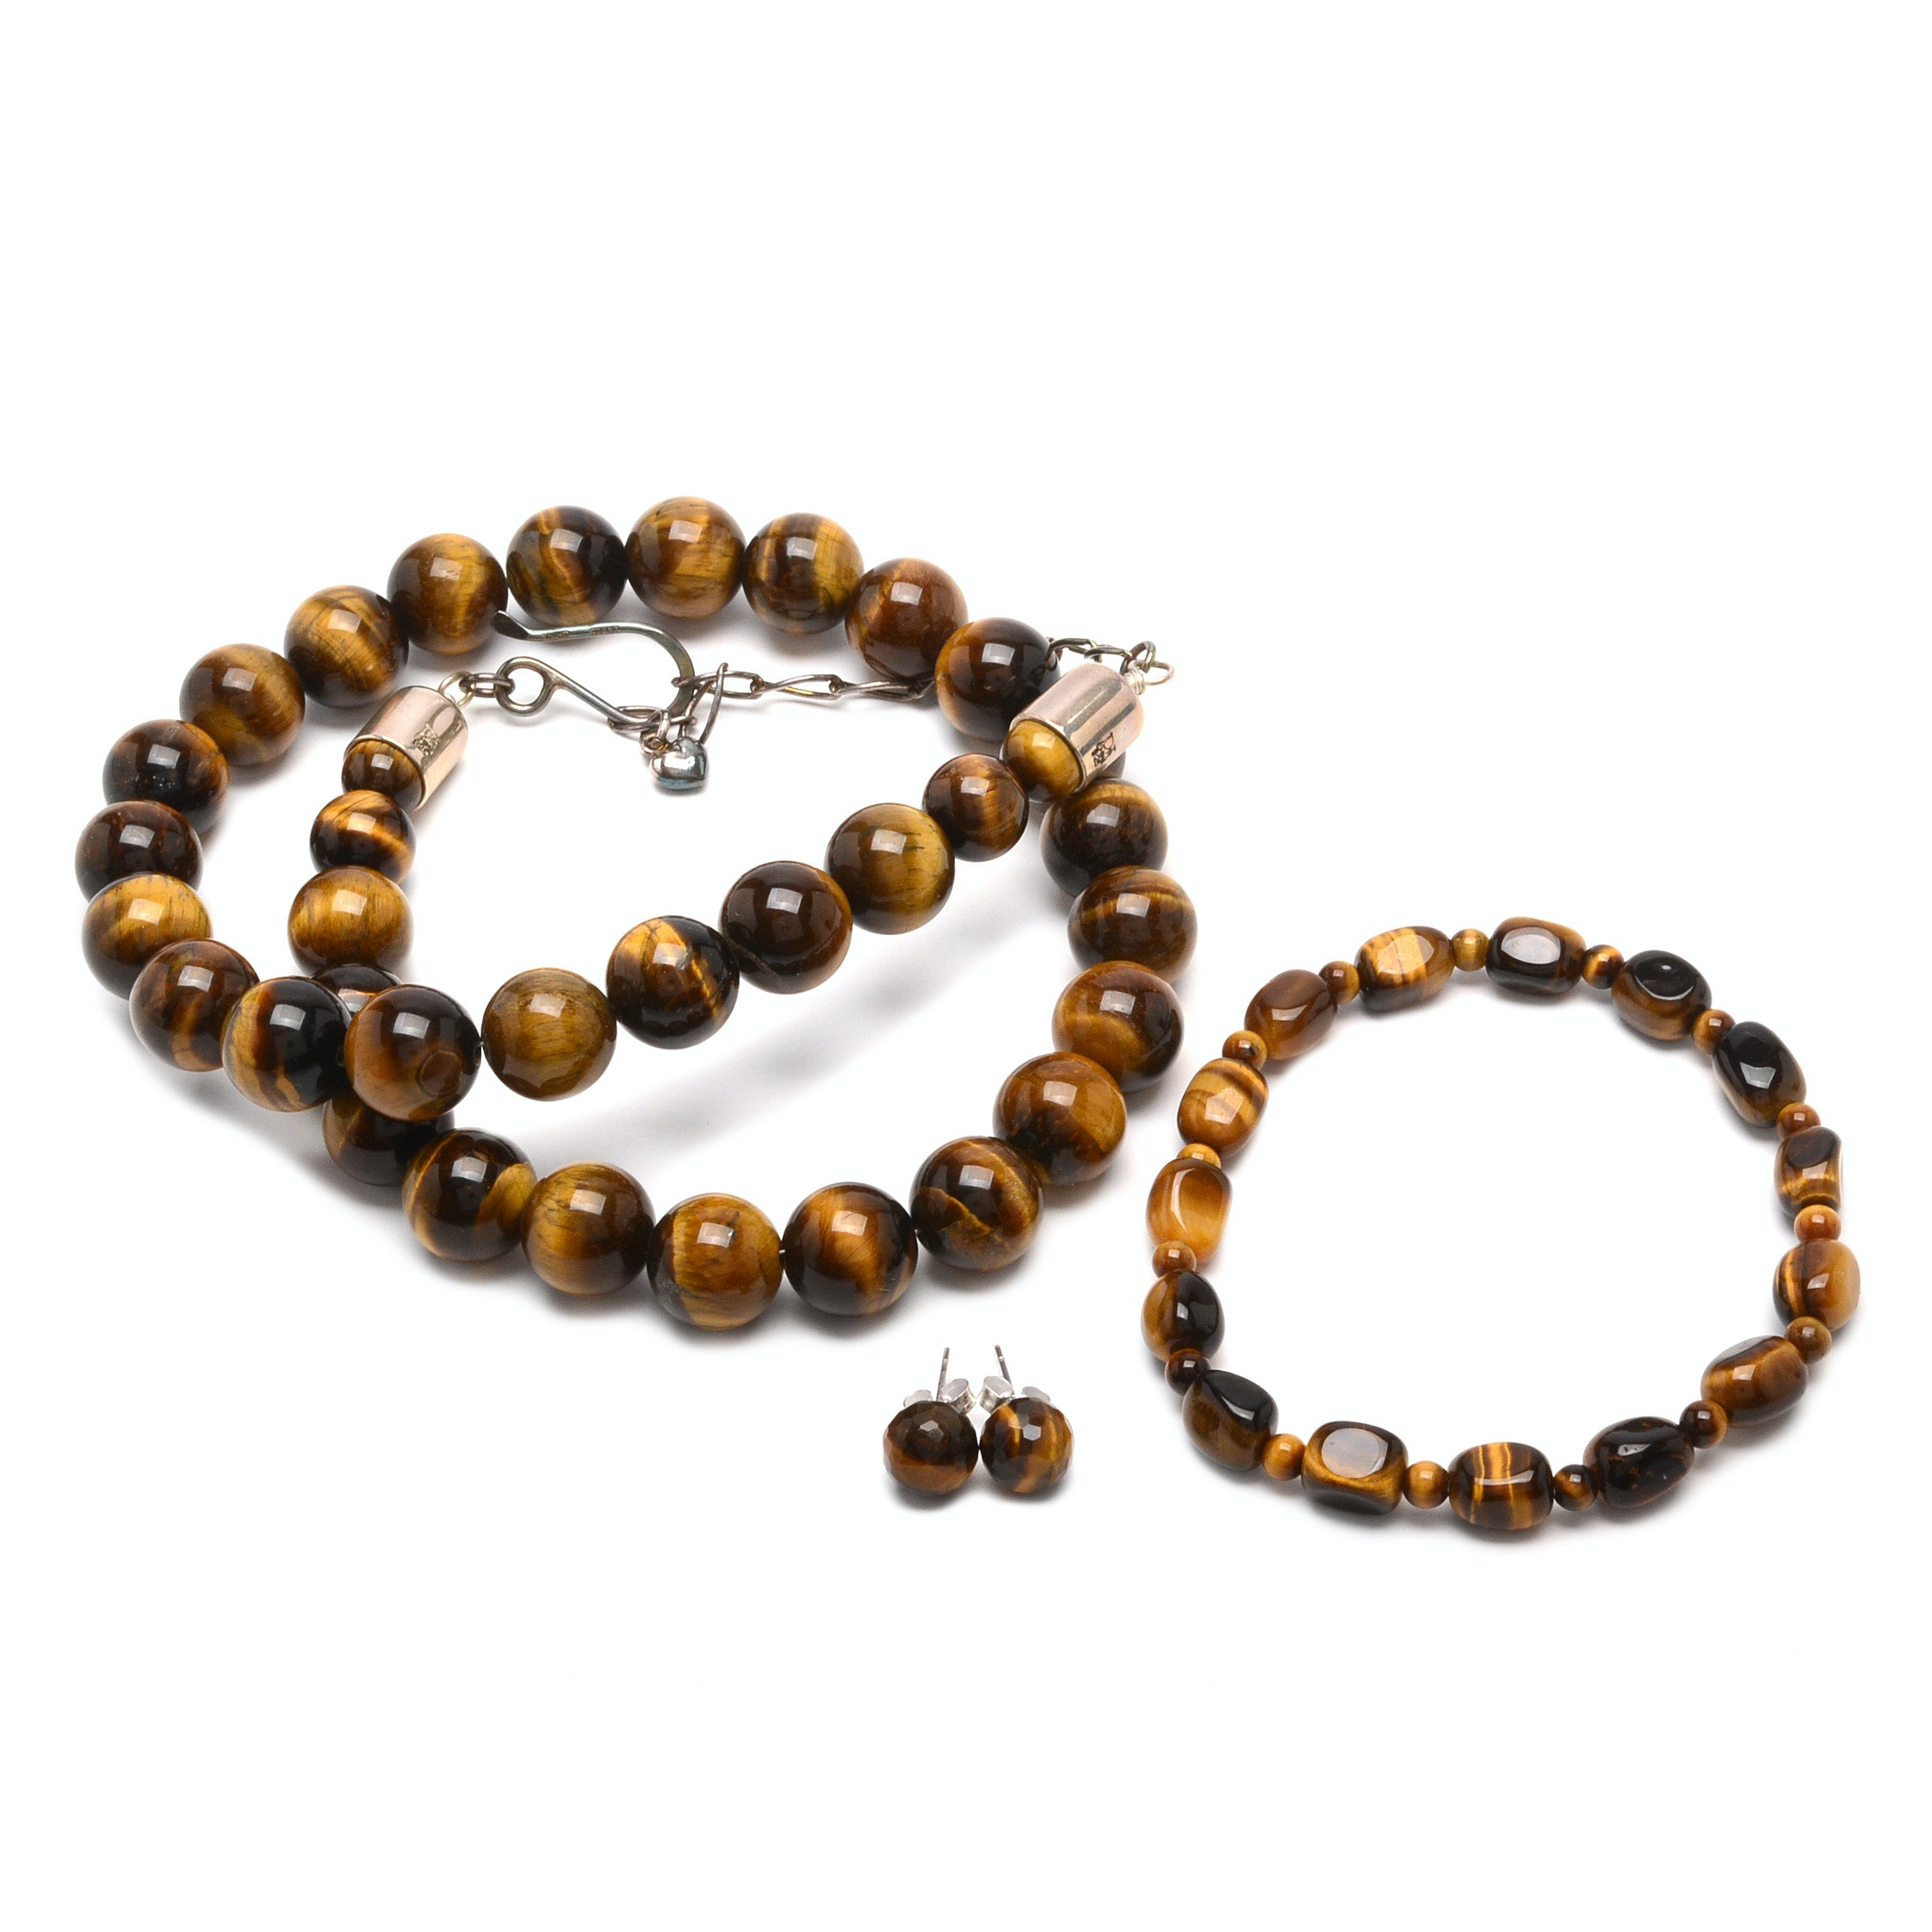 Jay King Sterling Silver Tiger's Eye Necklace with Bracelet and Earrings